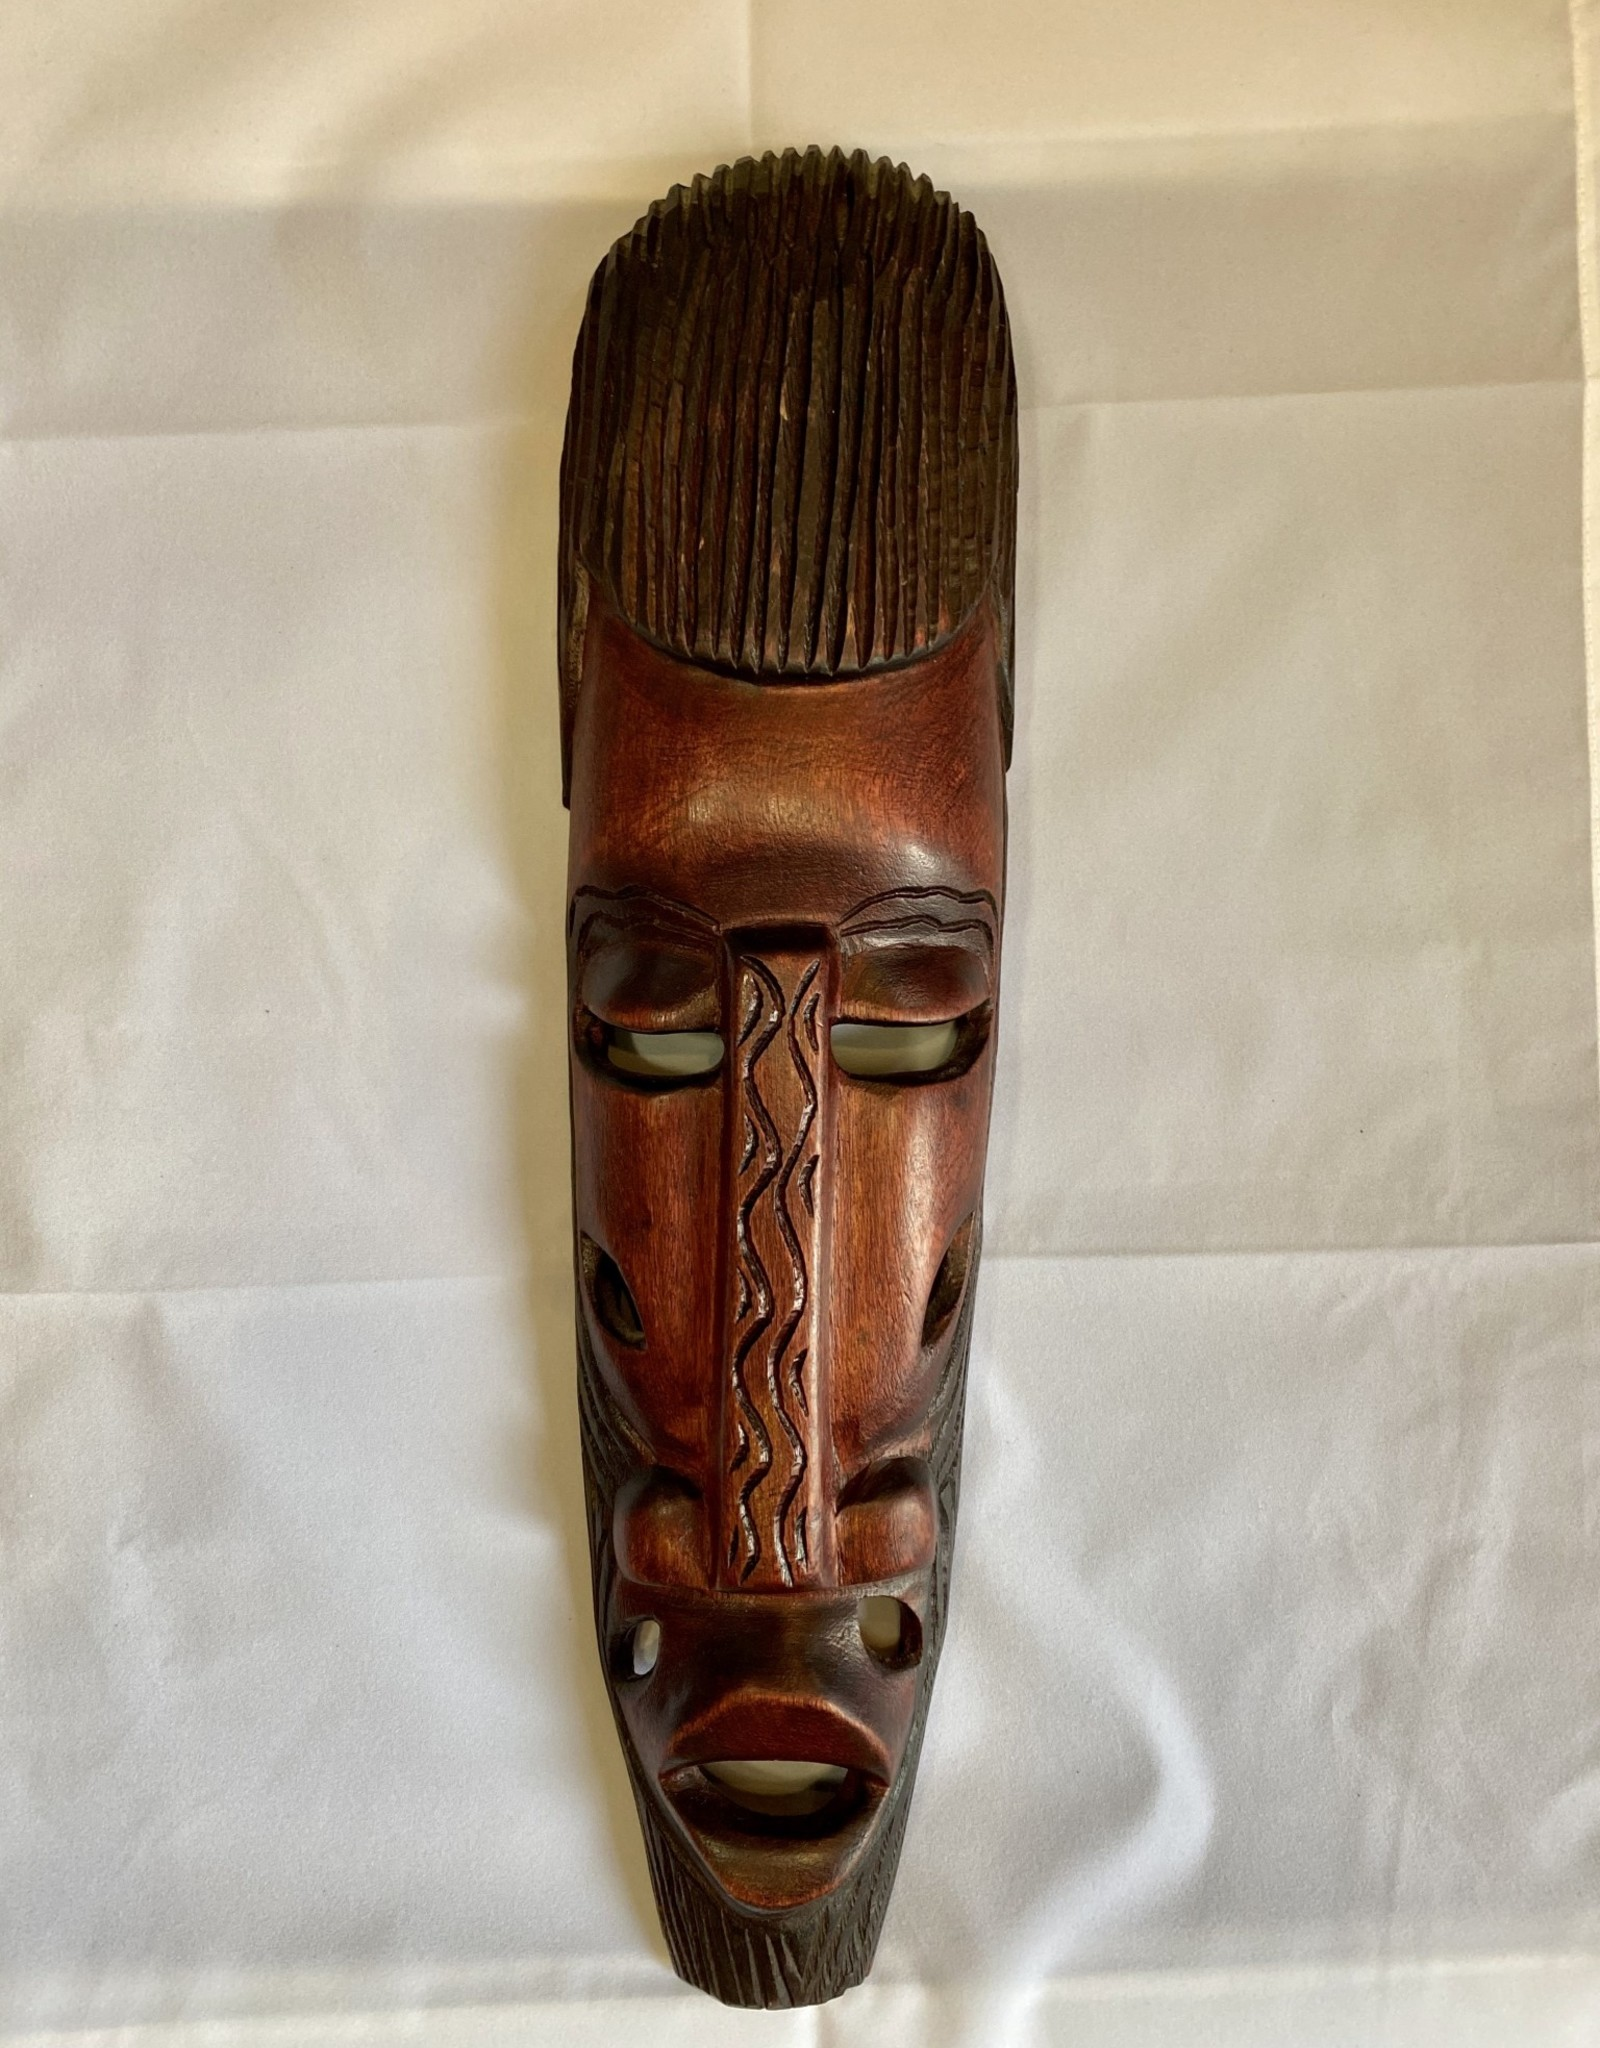 Male Mask - Long and Skinny